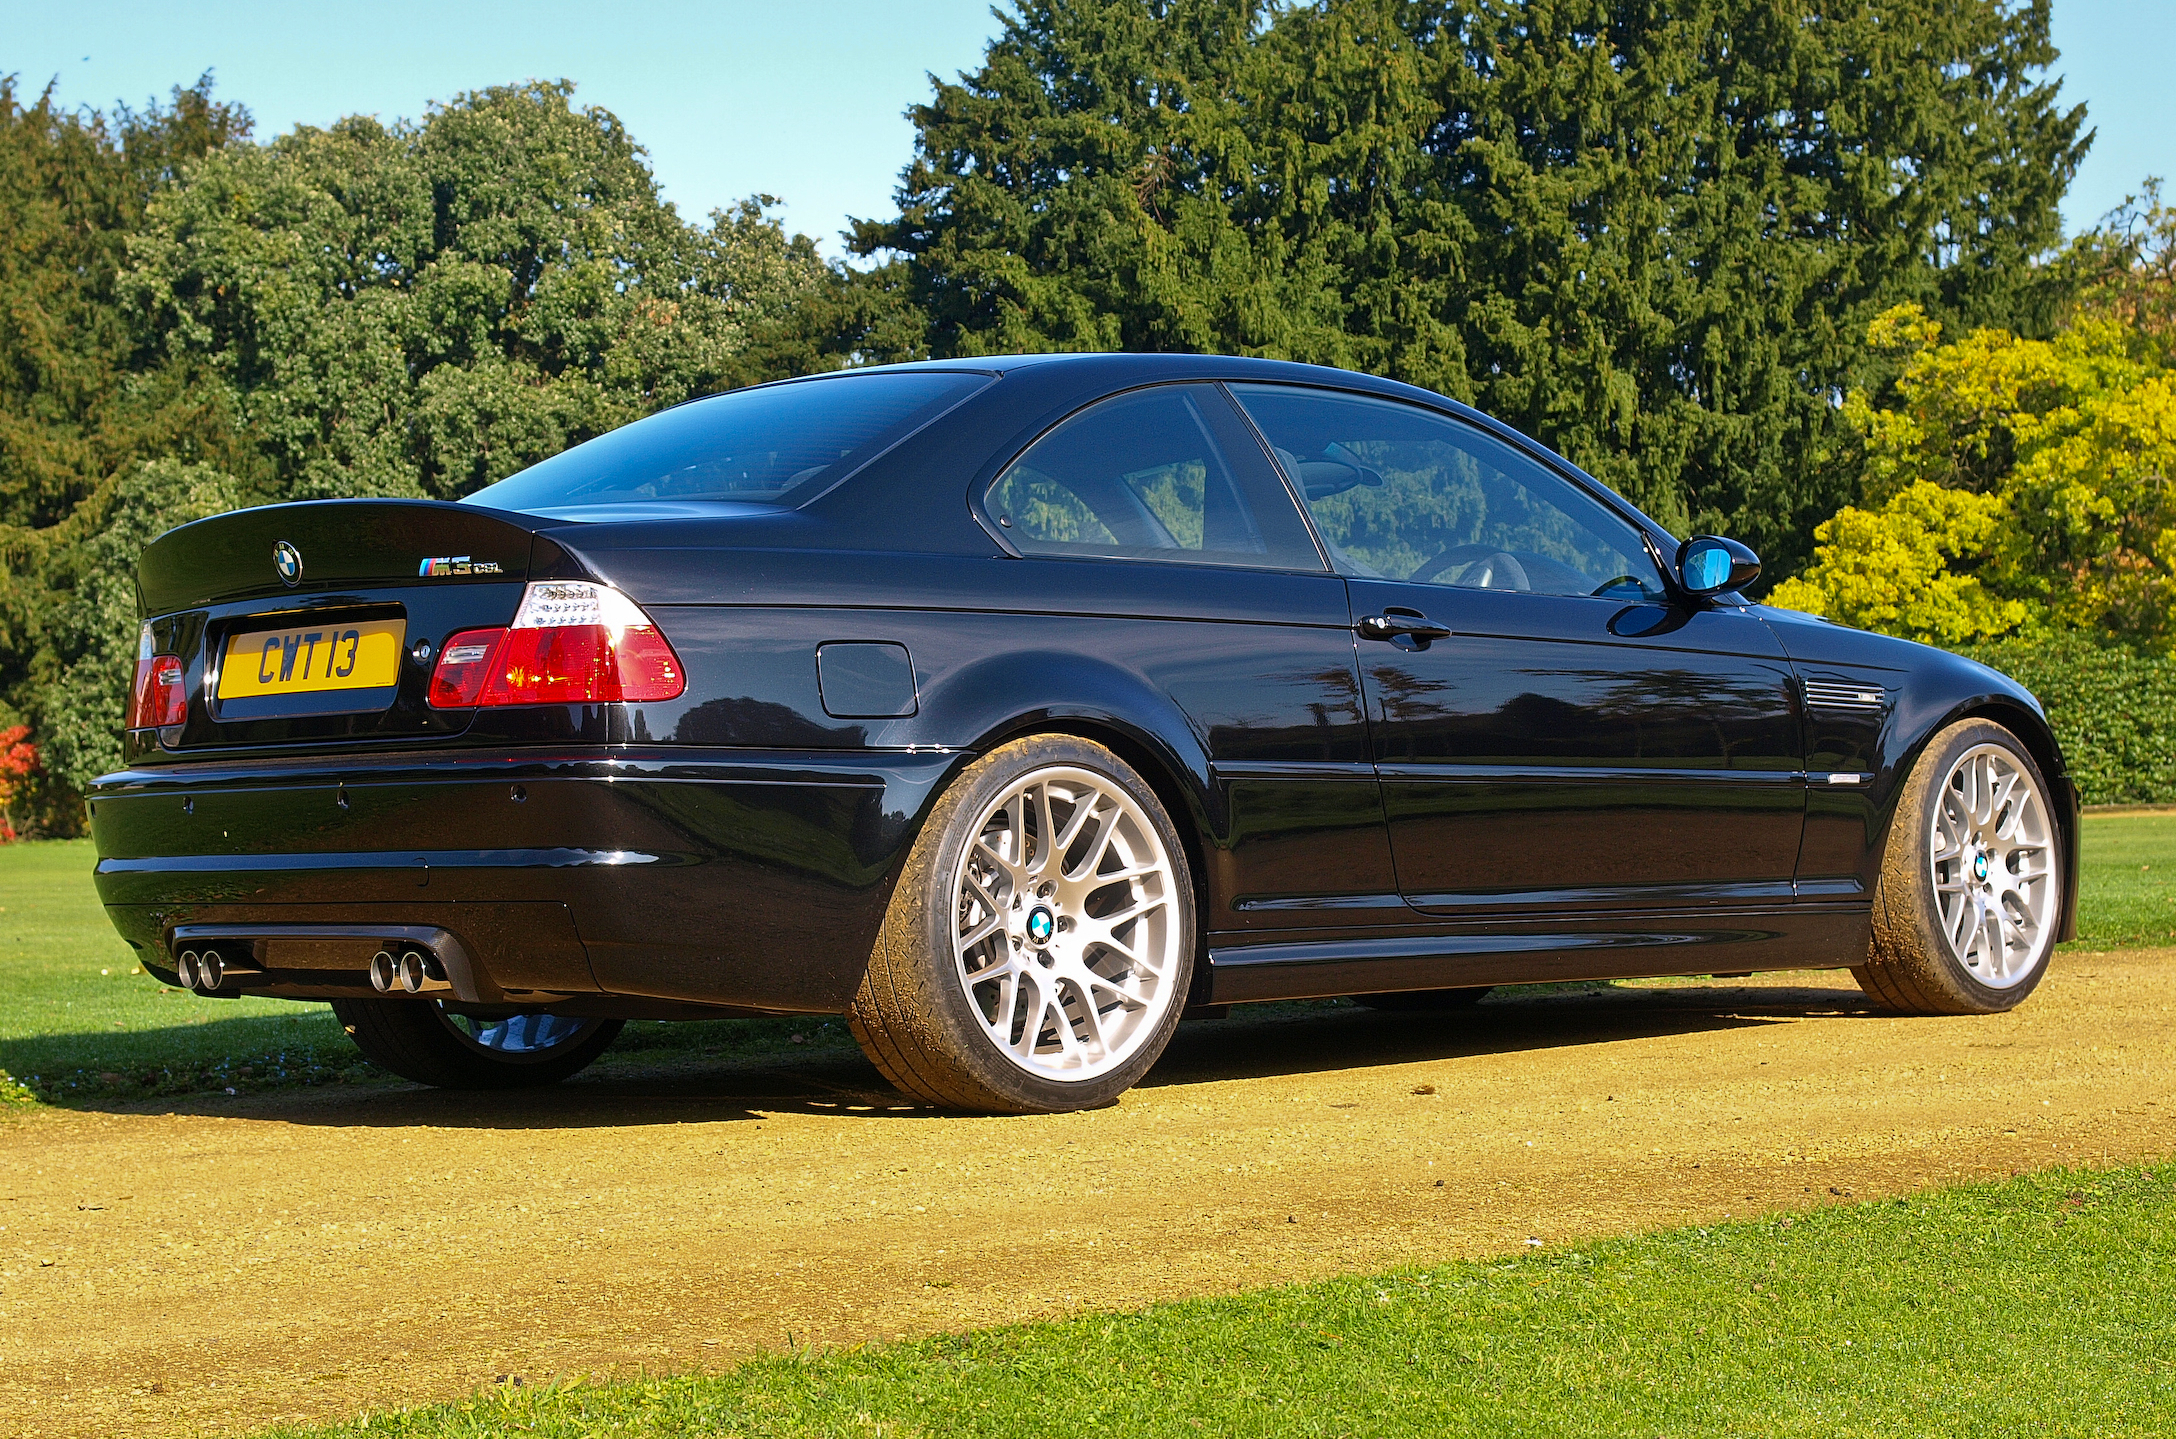 file black bmw m3 csl e46 wikipedia. Black Bedroom Furniture Sets. Home Design Ideas